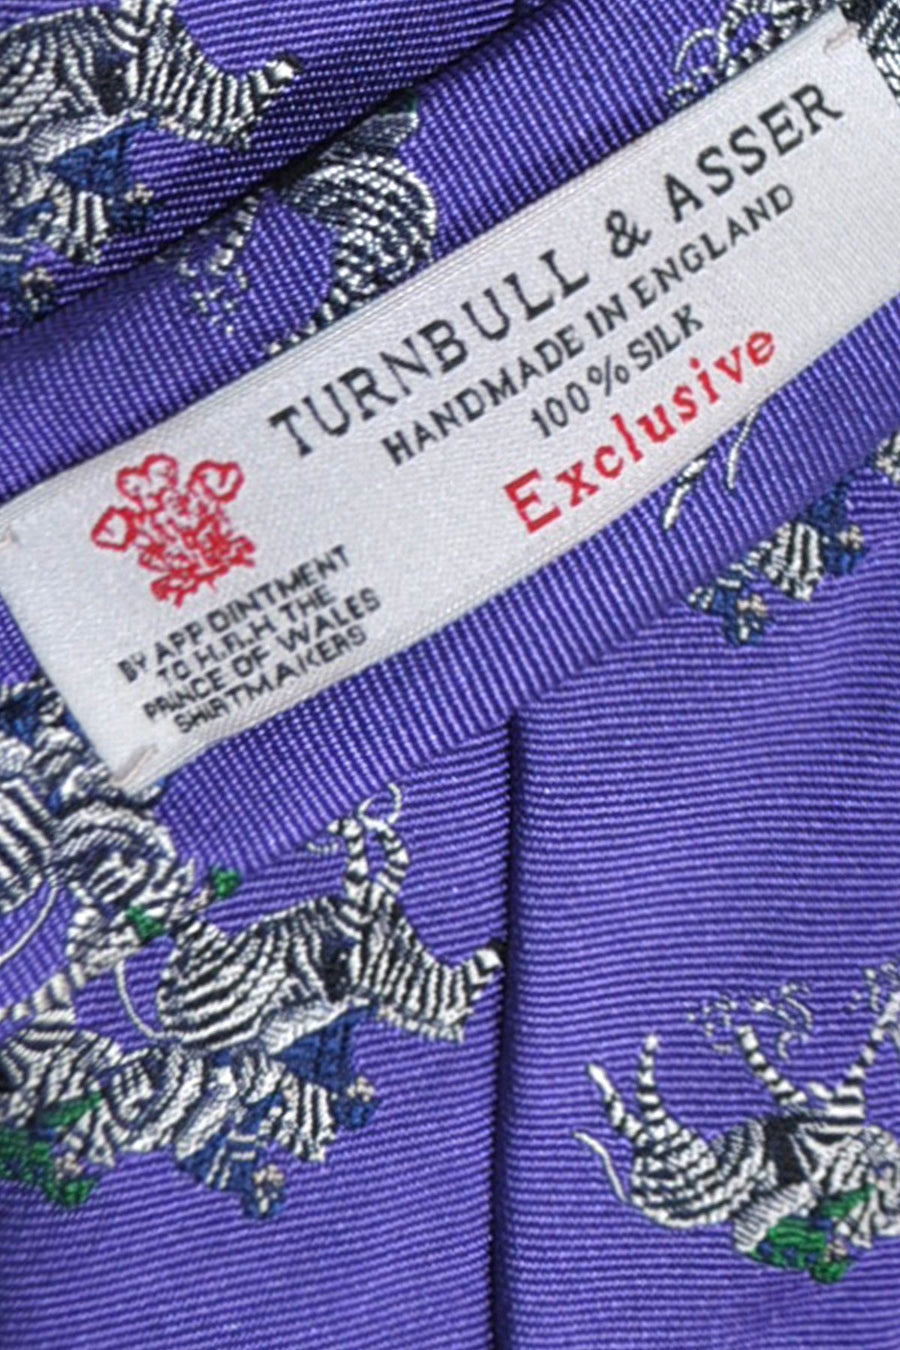 Turnbull & Asser Tie Purple Zebra Design FINAL SALE